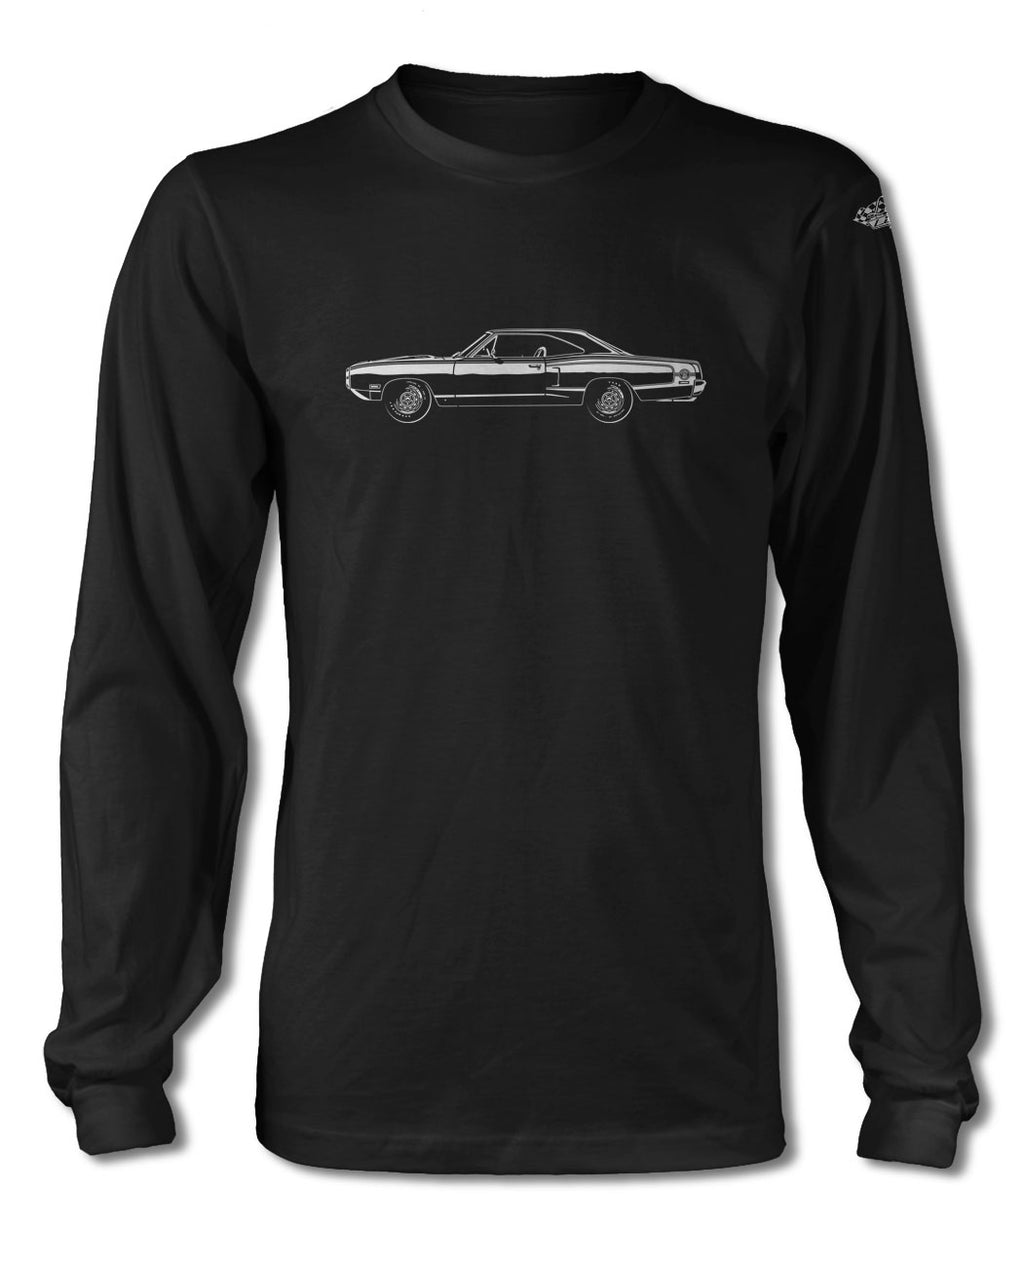 1970 Dodge Coronet Super Bee Coupe T-Shirt - Long Sleeves - Side View